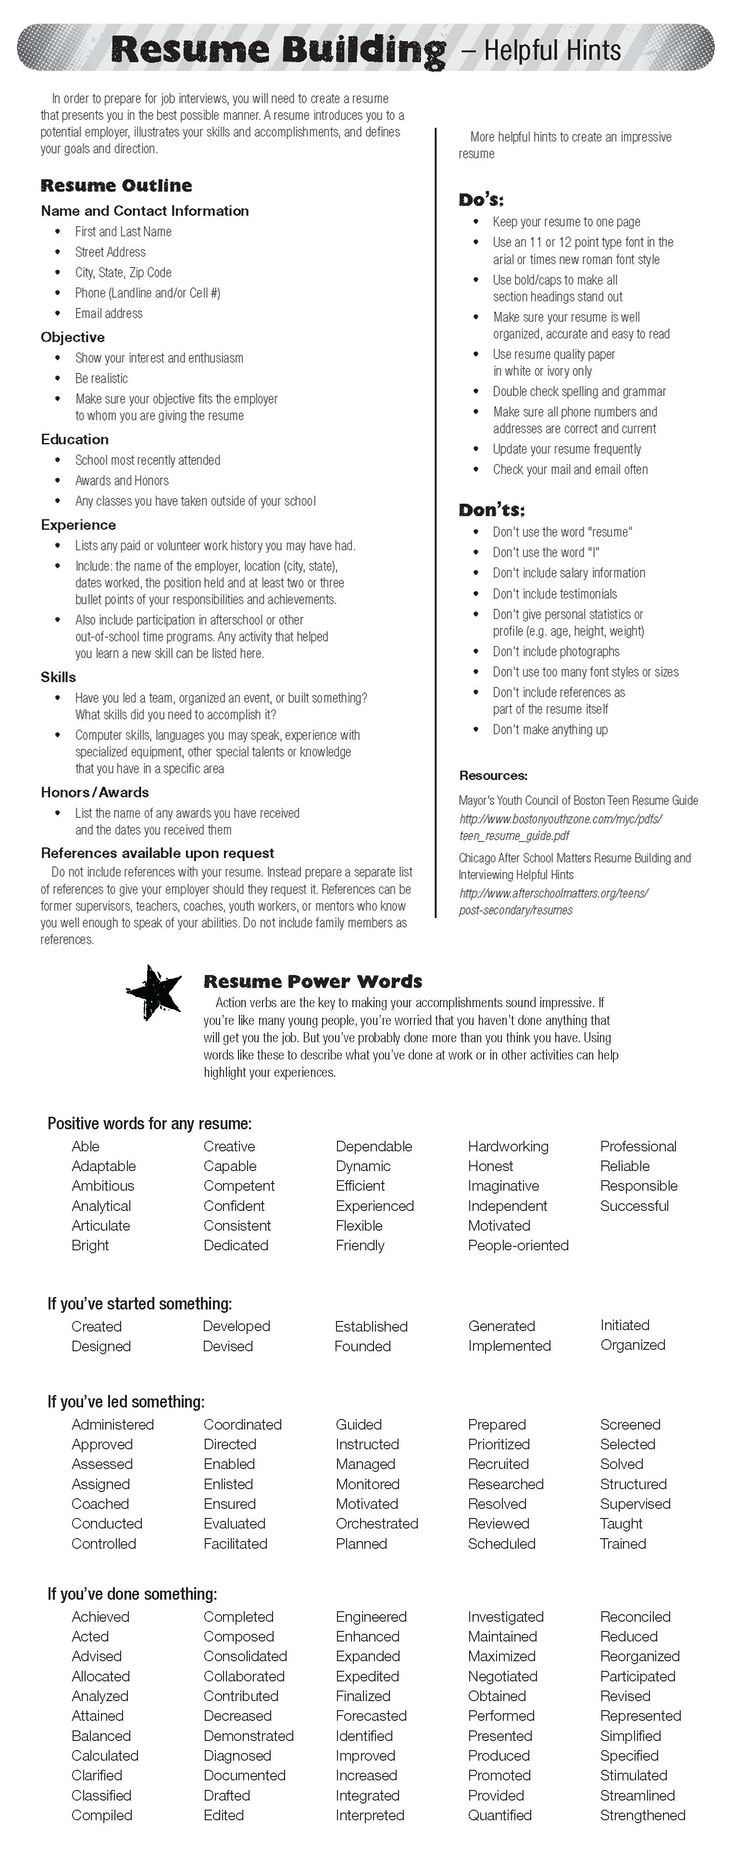 Picnictoimpeachus  Seductive  Ideas About Resume On Pinterest  Cv Format Resume  With Lovable Check Out Todays Resume Building Tips Resume Resumepowerwords With Comely Student Resume Examples First Job Also Good Words To Put On A Resume In Addition Free Google Resume Templates And Data Entry Skills Resume As Well As Resume Letter Format Additionally What Is A Resume For A Job Application From Pinterestcom With Picnictoimpeachus  Lovable  Ideas About Resume On Pinterest  Cv Format Resume  With Comely Check Out Todays Resume Building Tips Resume Resumepowerwords And Seductive Student Resume Examples First Job Also Good Words To Put On A Resume In Addition Free Google Resume Templates From Pinterestcom